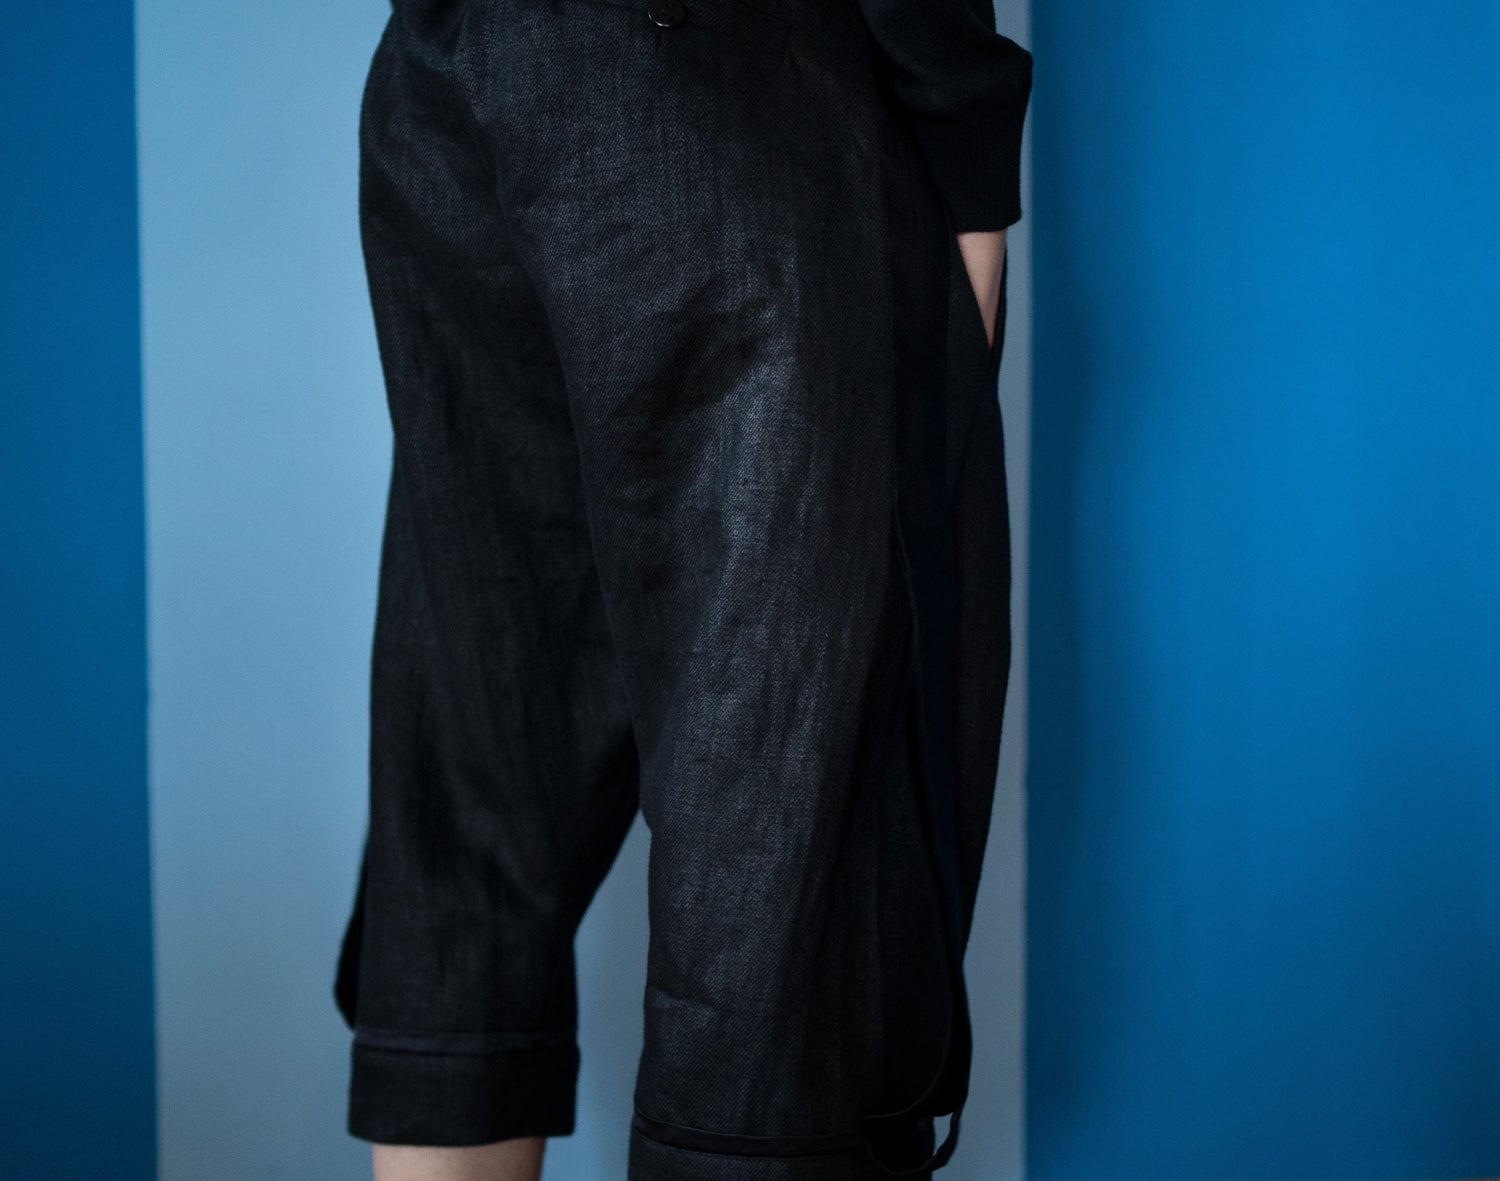 Image of Black trousers